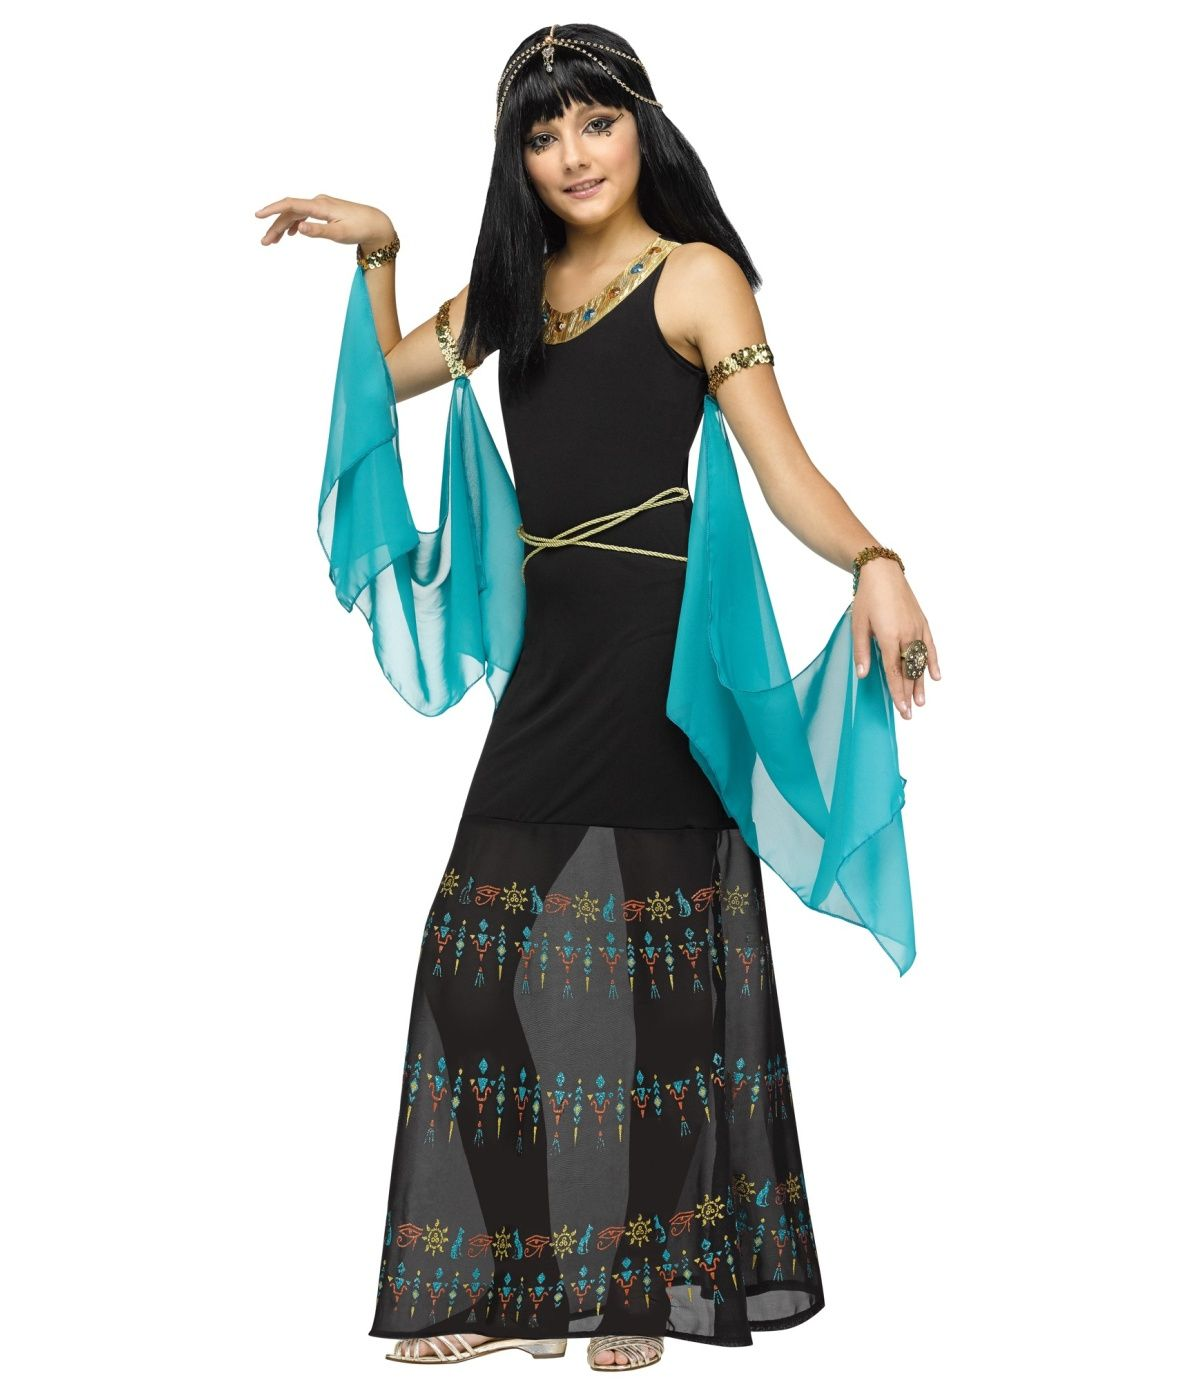 Egyptian hieroglyph queen girls costume egyptian costumes